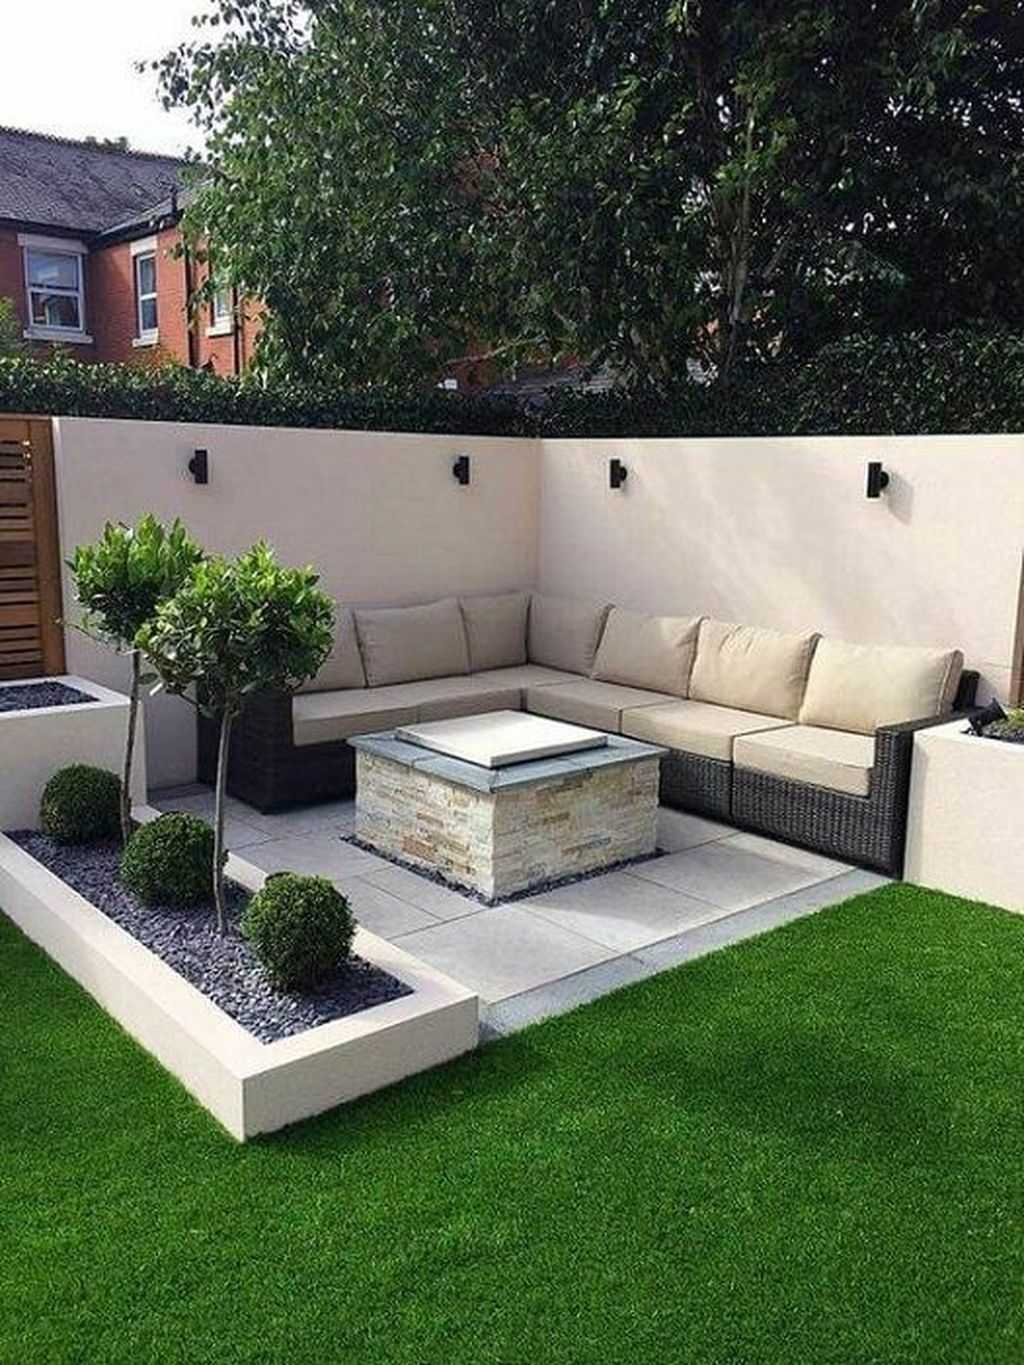 30 Amazing Backyard Seating Ideas Page 7 Of 30 Gardenholic